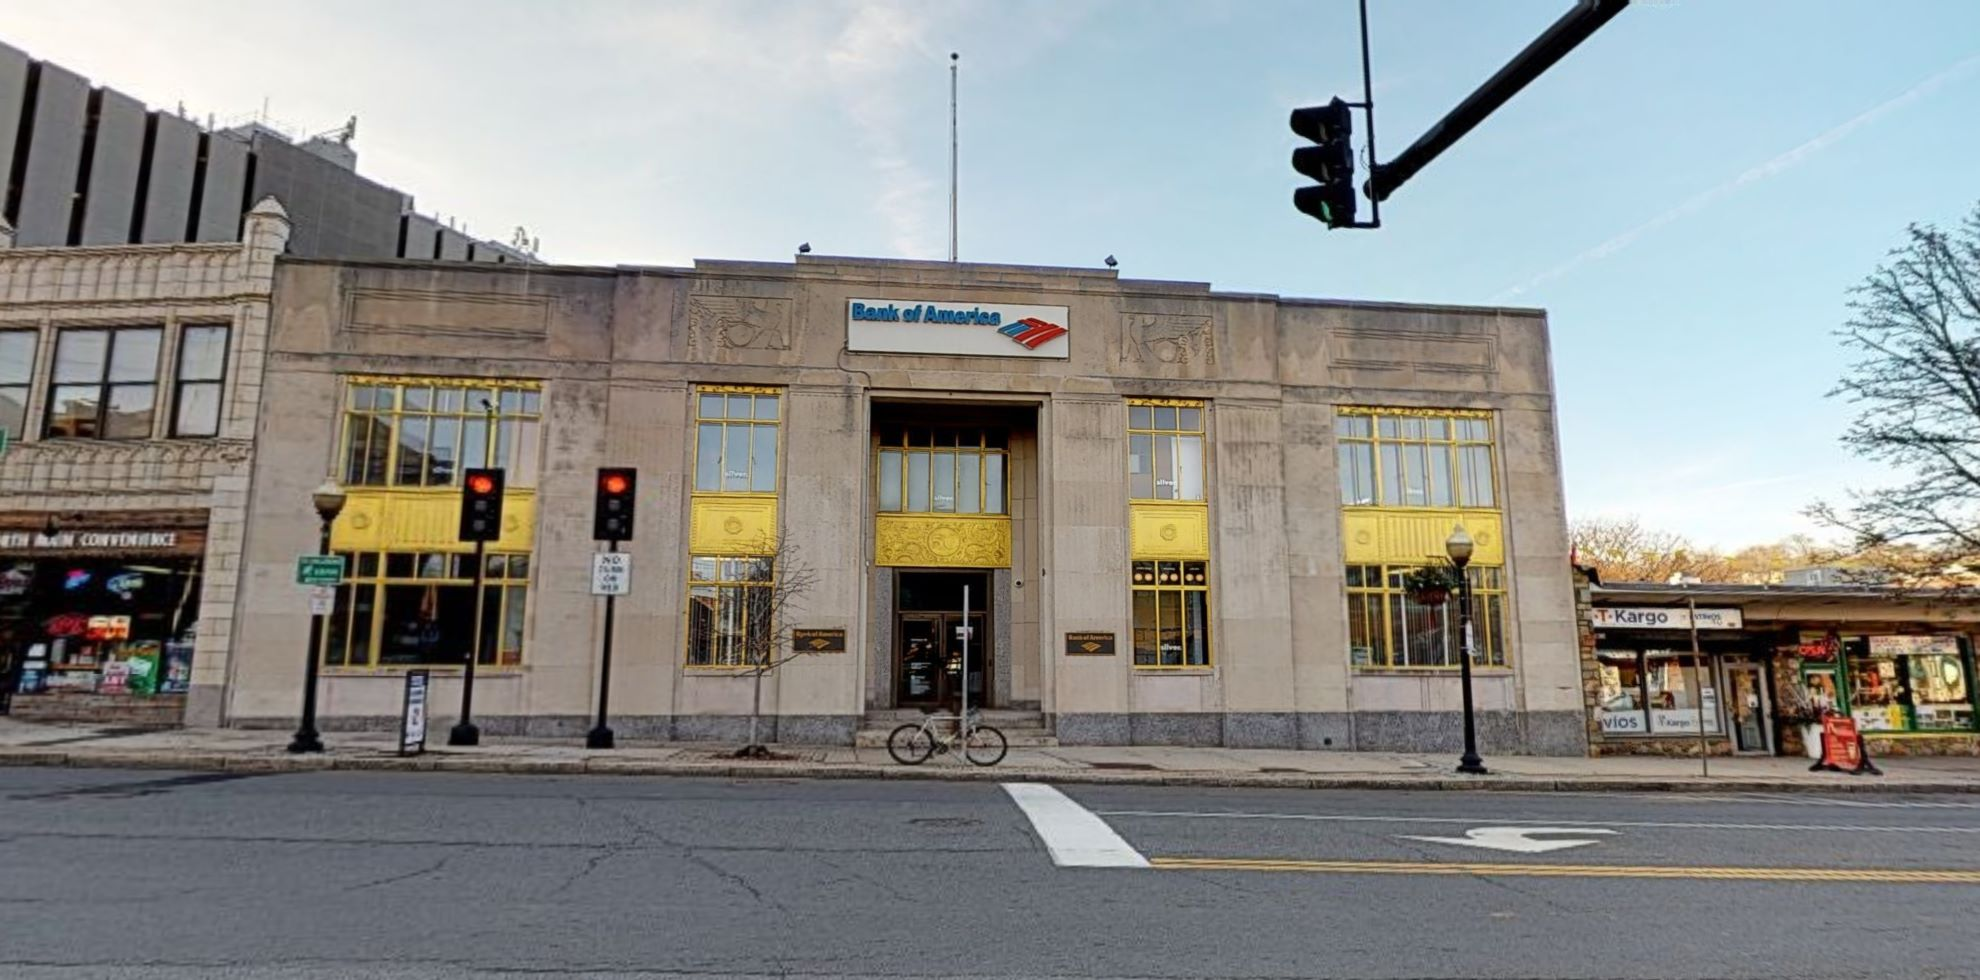 Bank of America financial center with walk-up ATM   50 N Main St, Norwalk, CT 06854